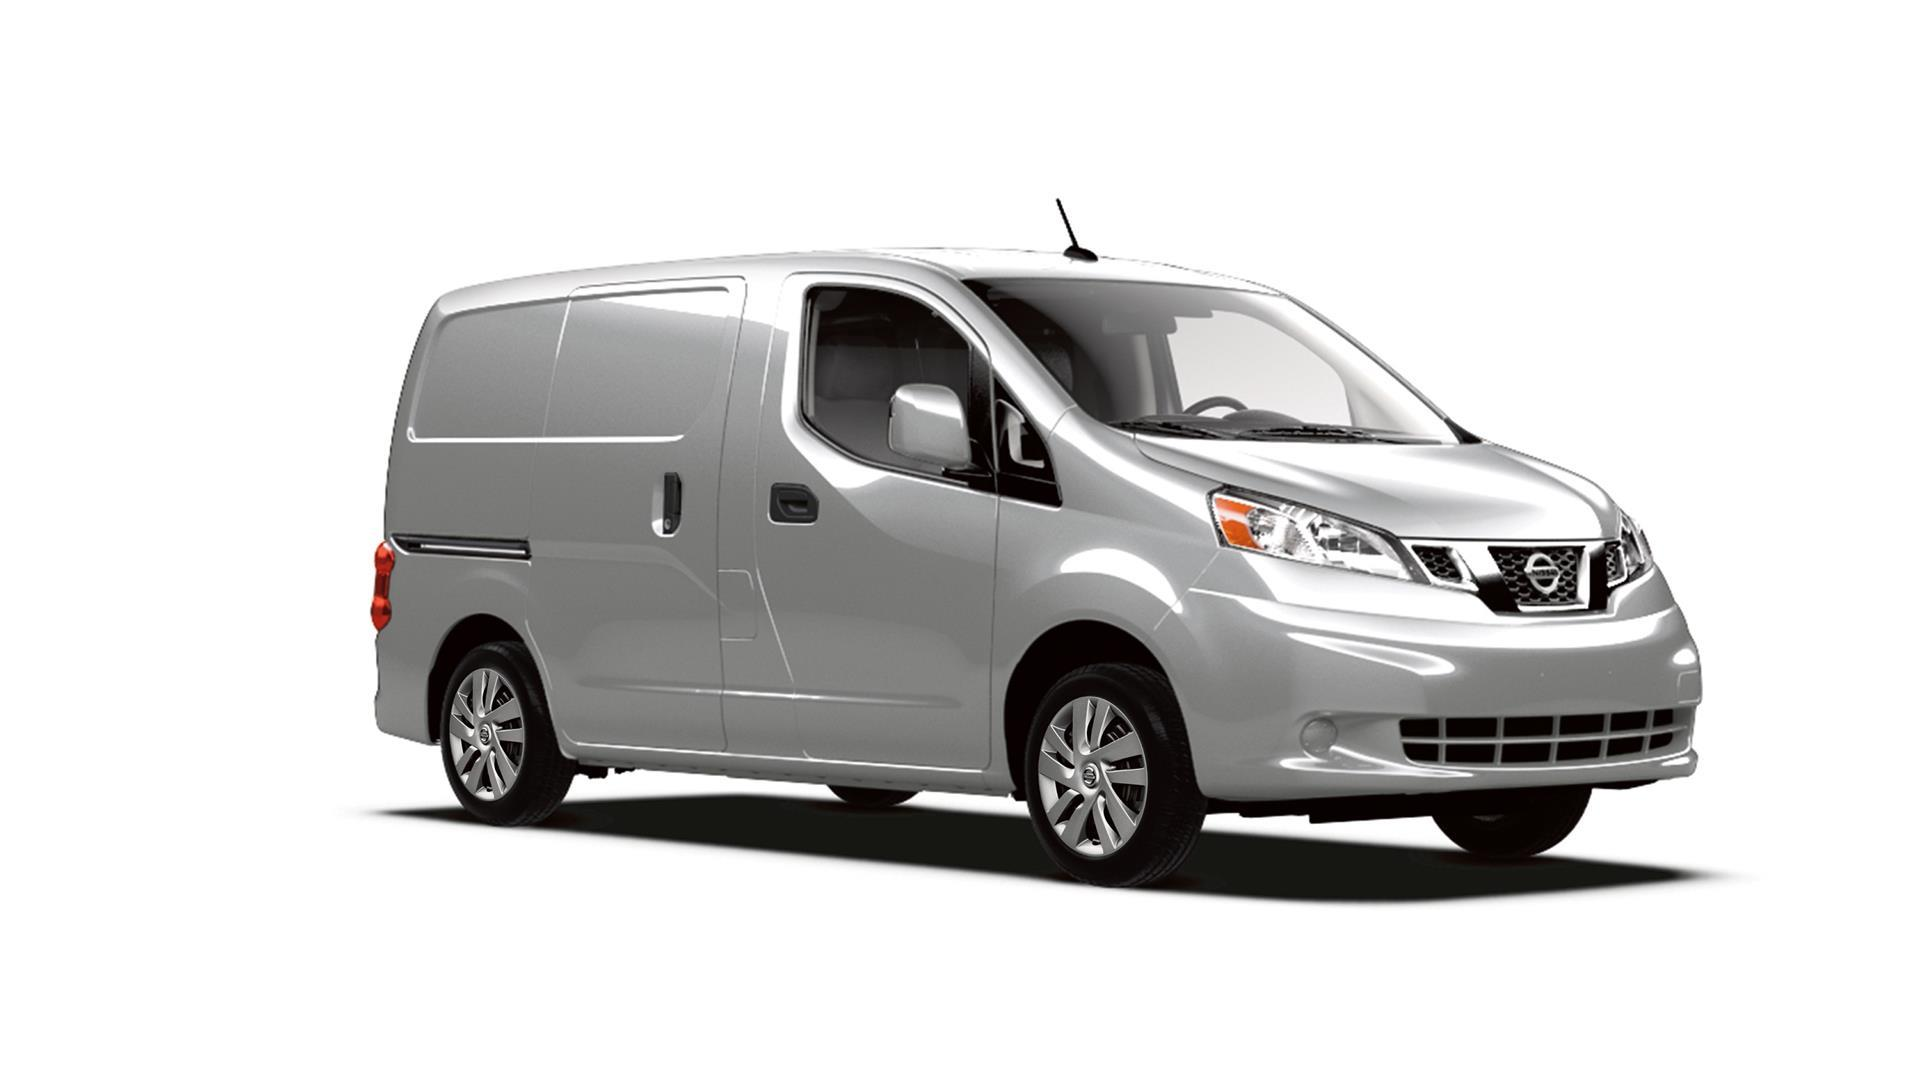 2017 nissan nv200. Black Bedroom Furniture Sets. Home Design Ideas